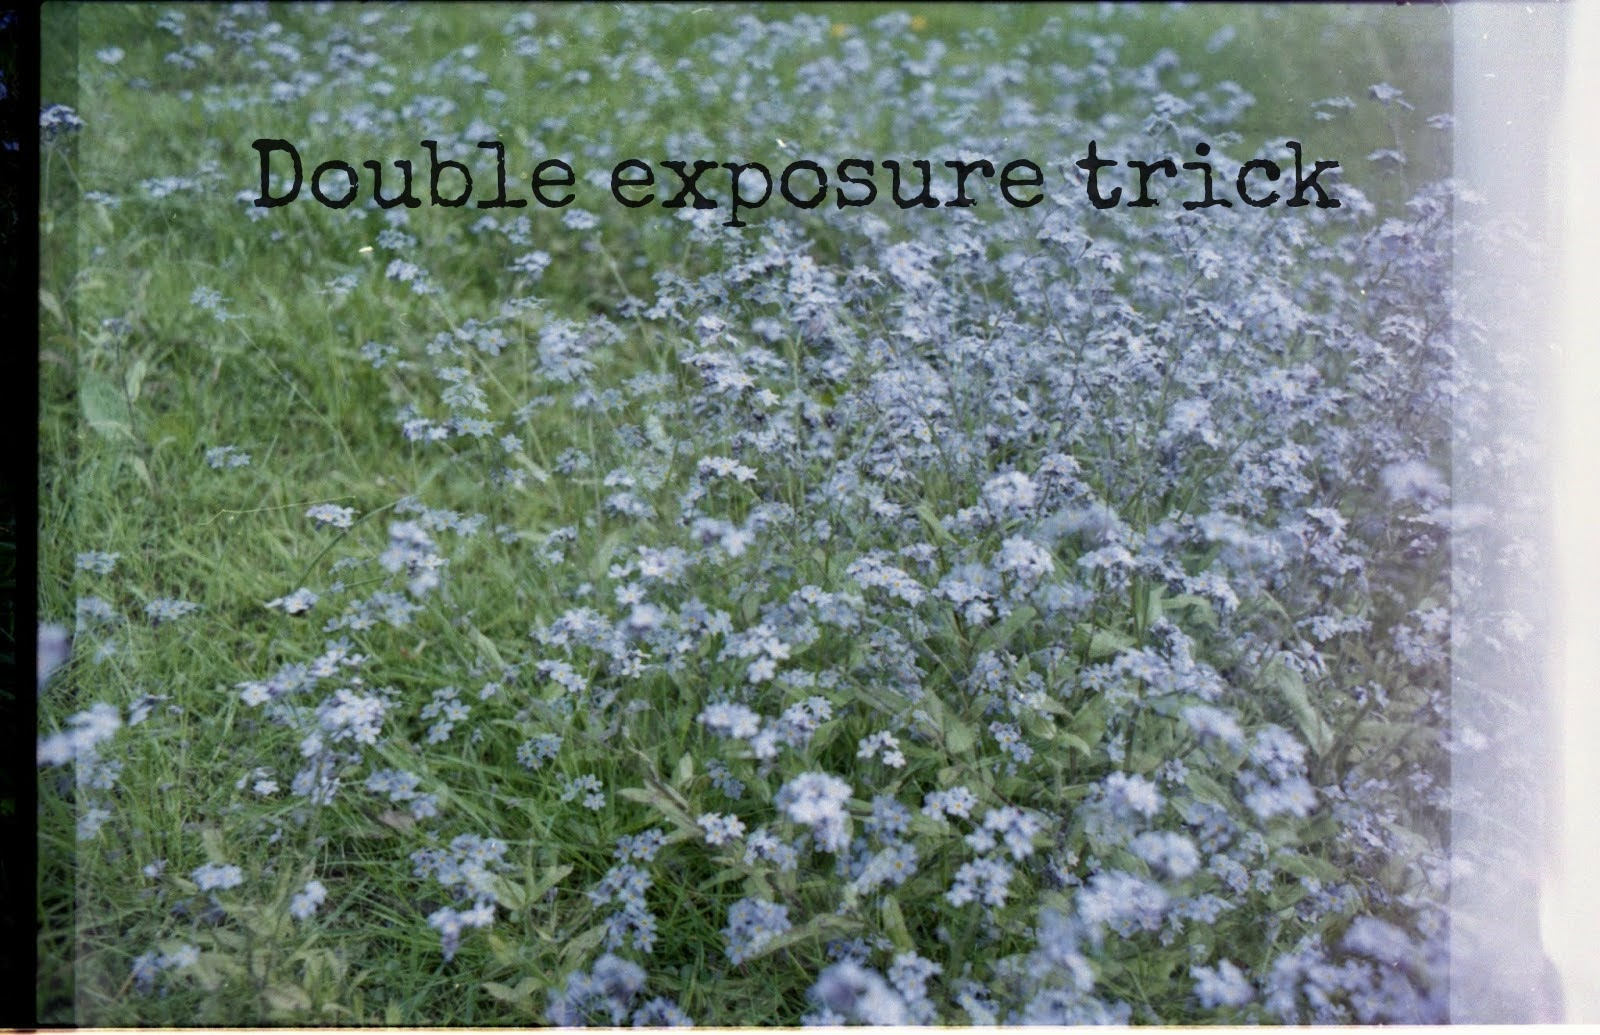 http://talesonfilm.blogspot.co.uk/2014/06/double-exposure-trick.html